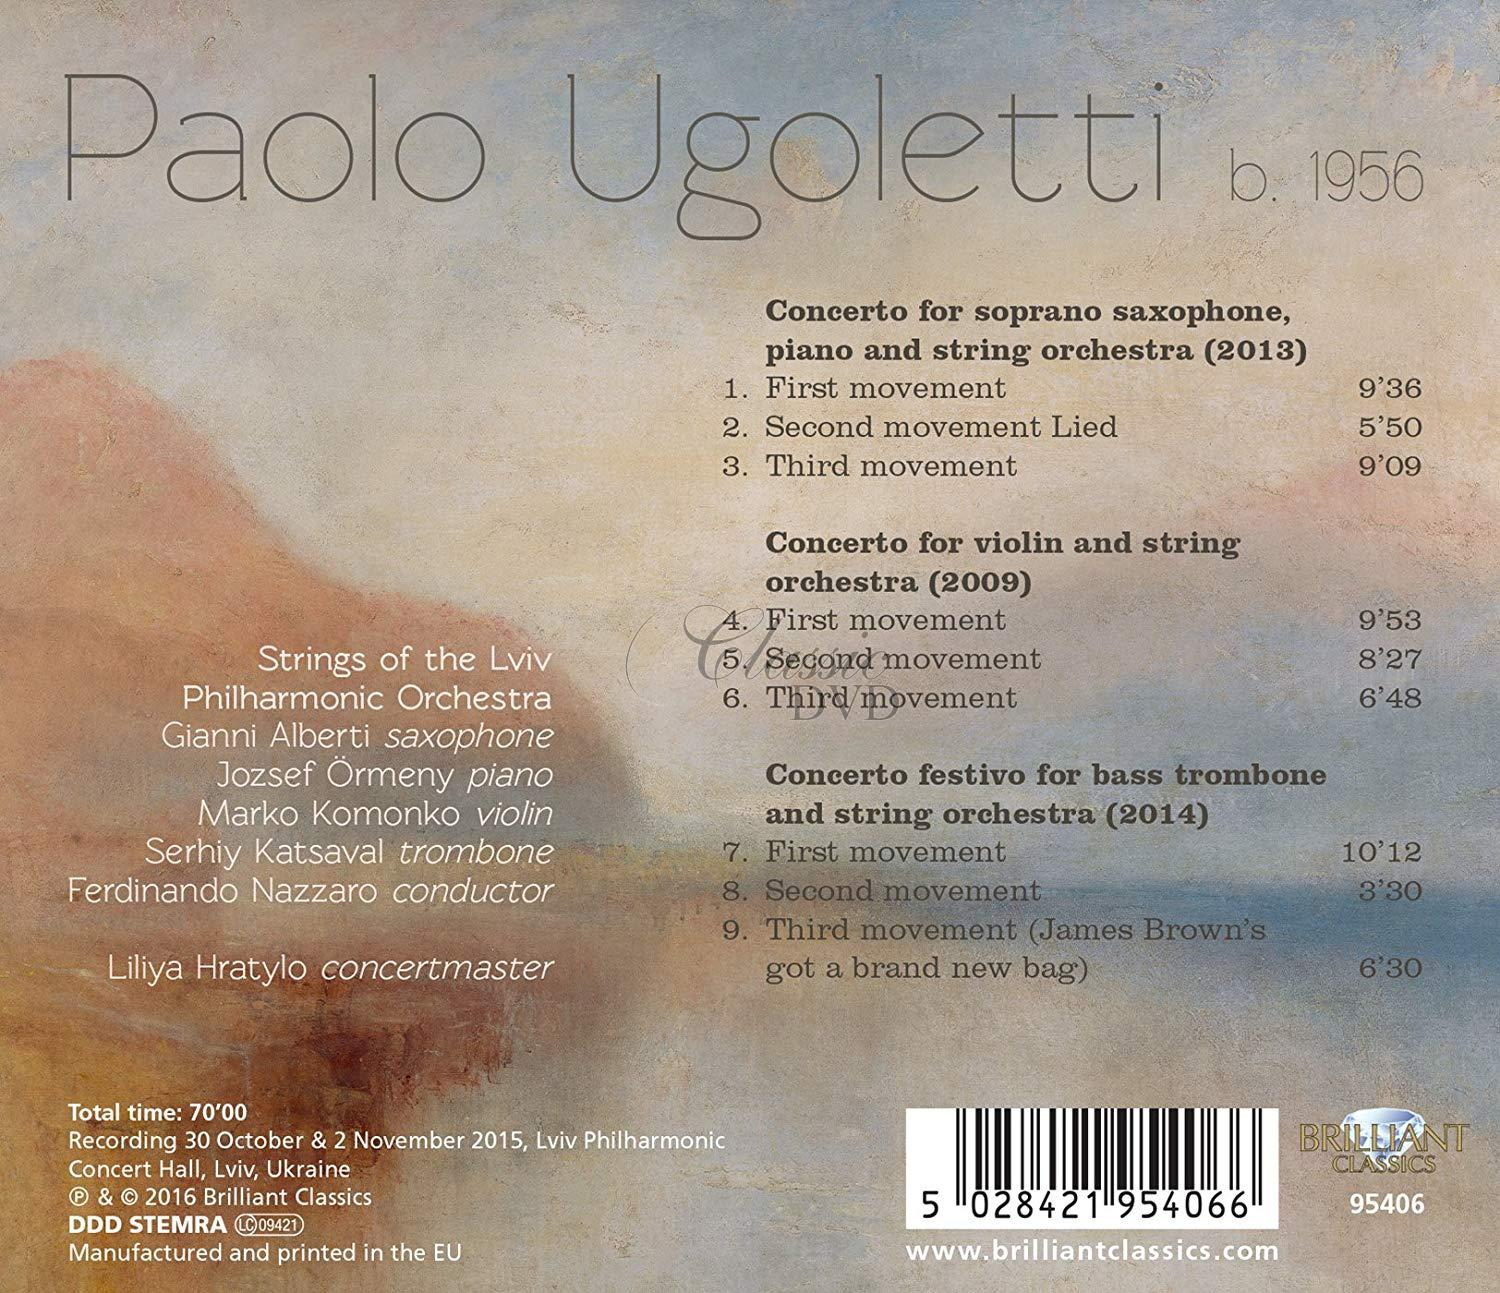 UGOLETTI: Three Concertos (CD)